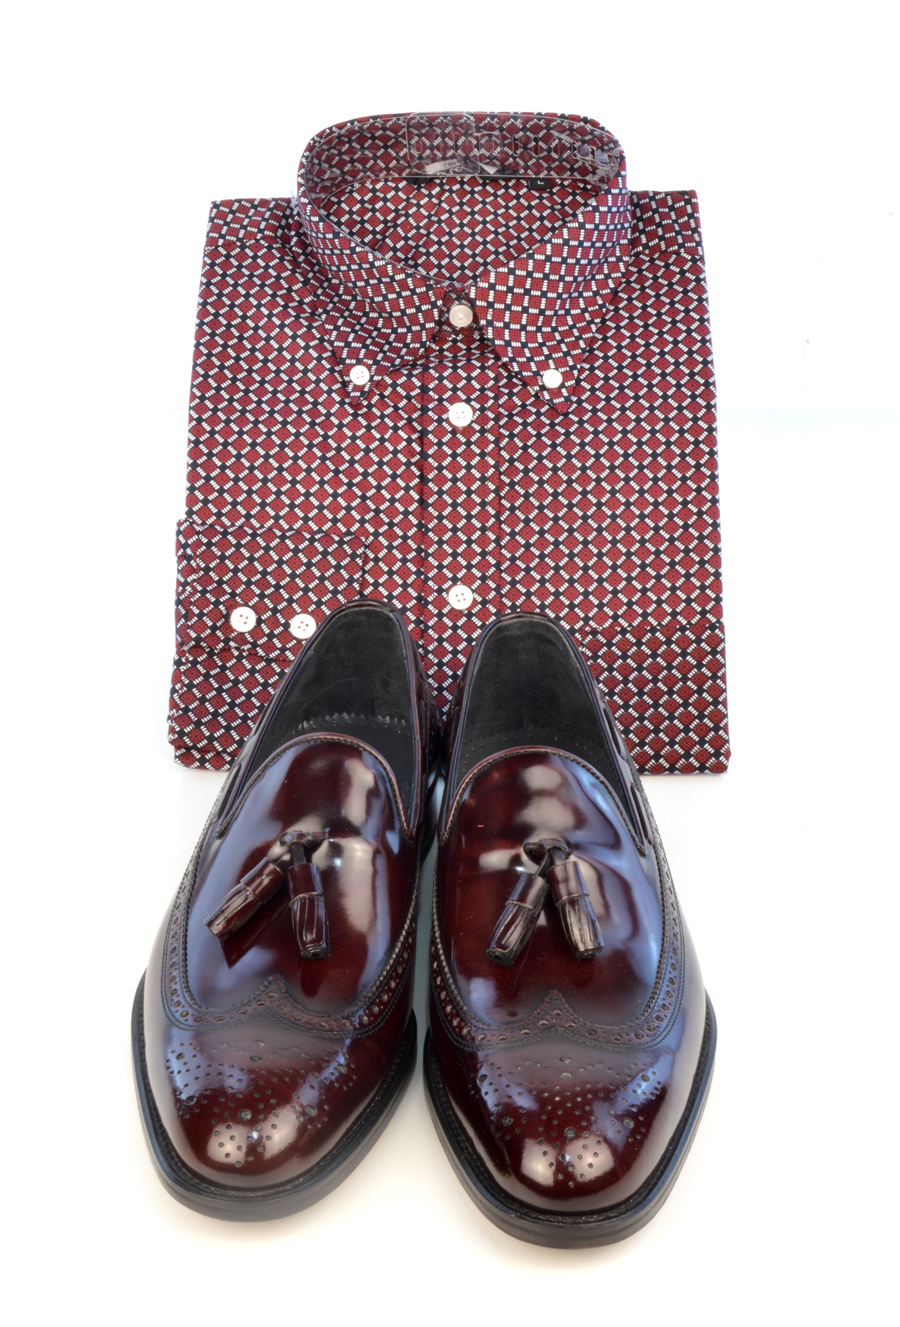 modshoes-beckley-oxblood-tassel-loafers-with-pattern-shirt